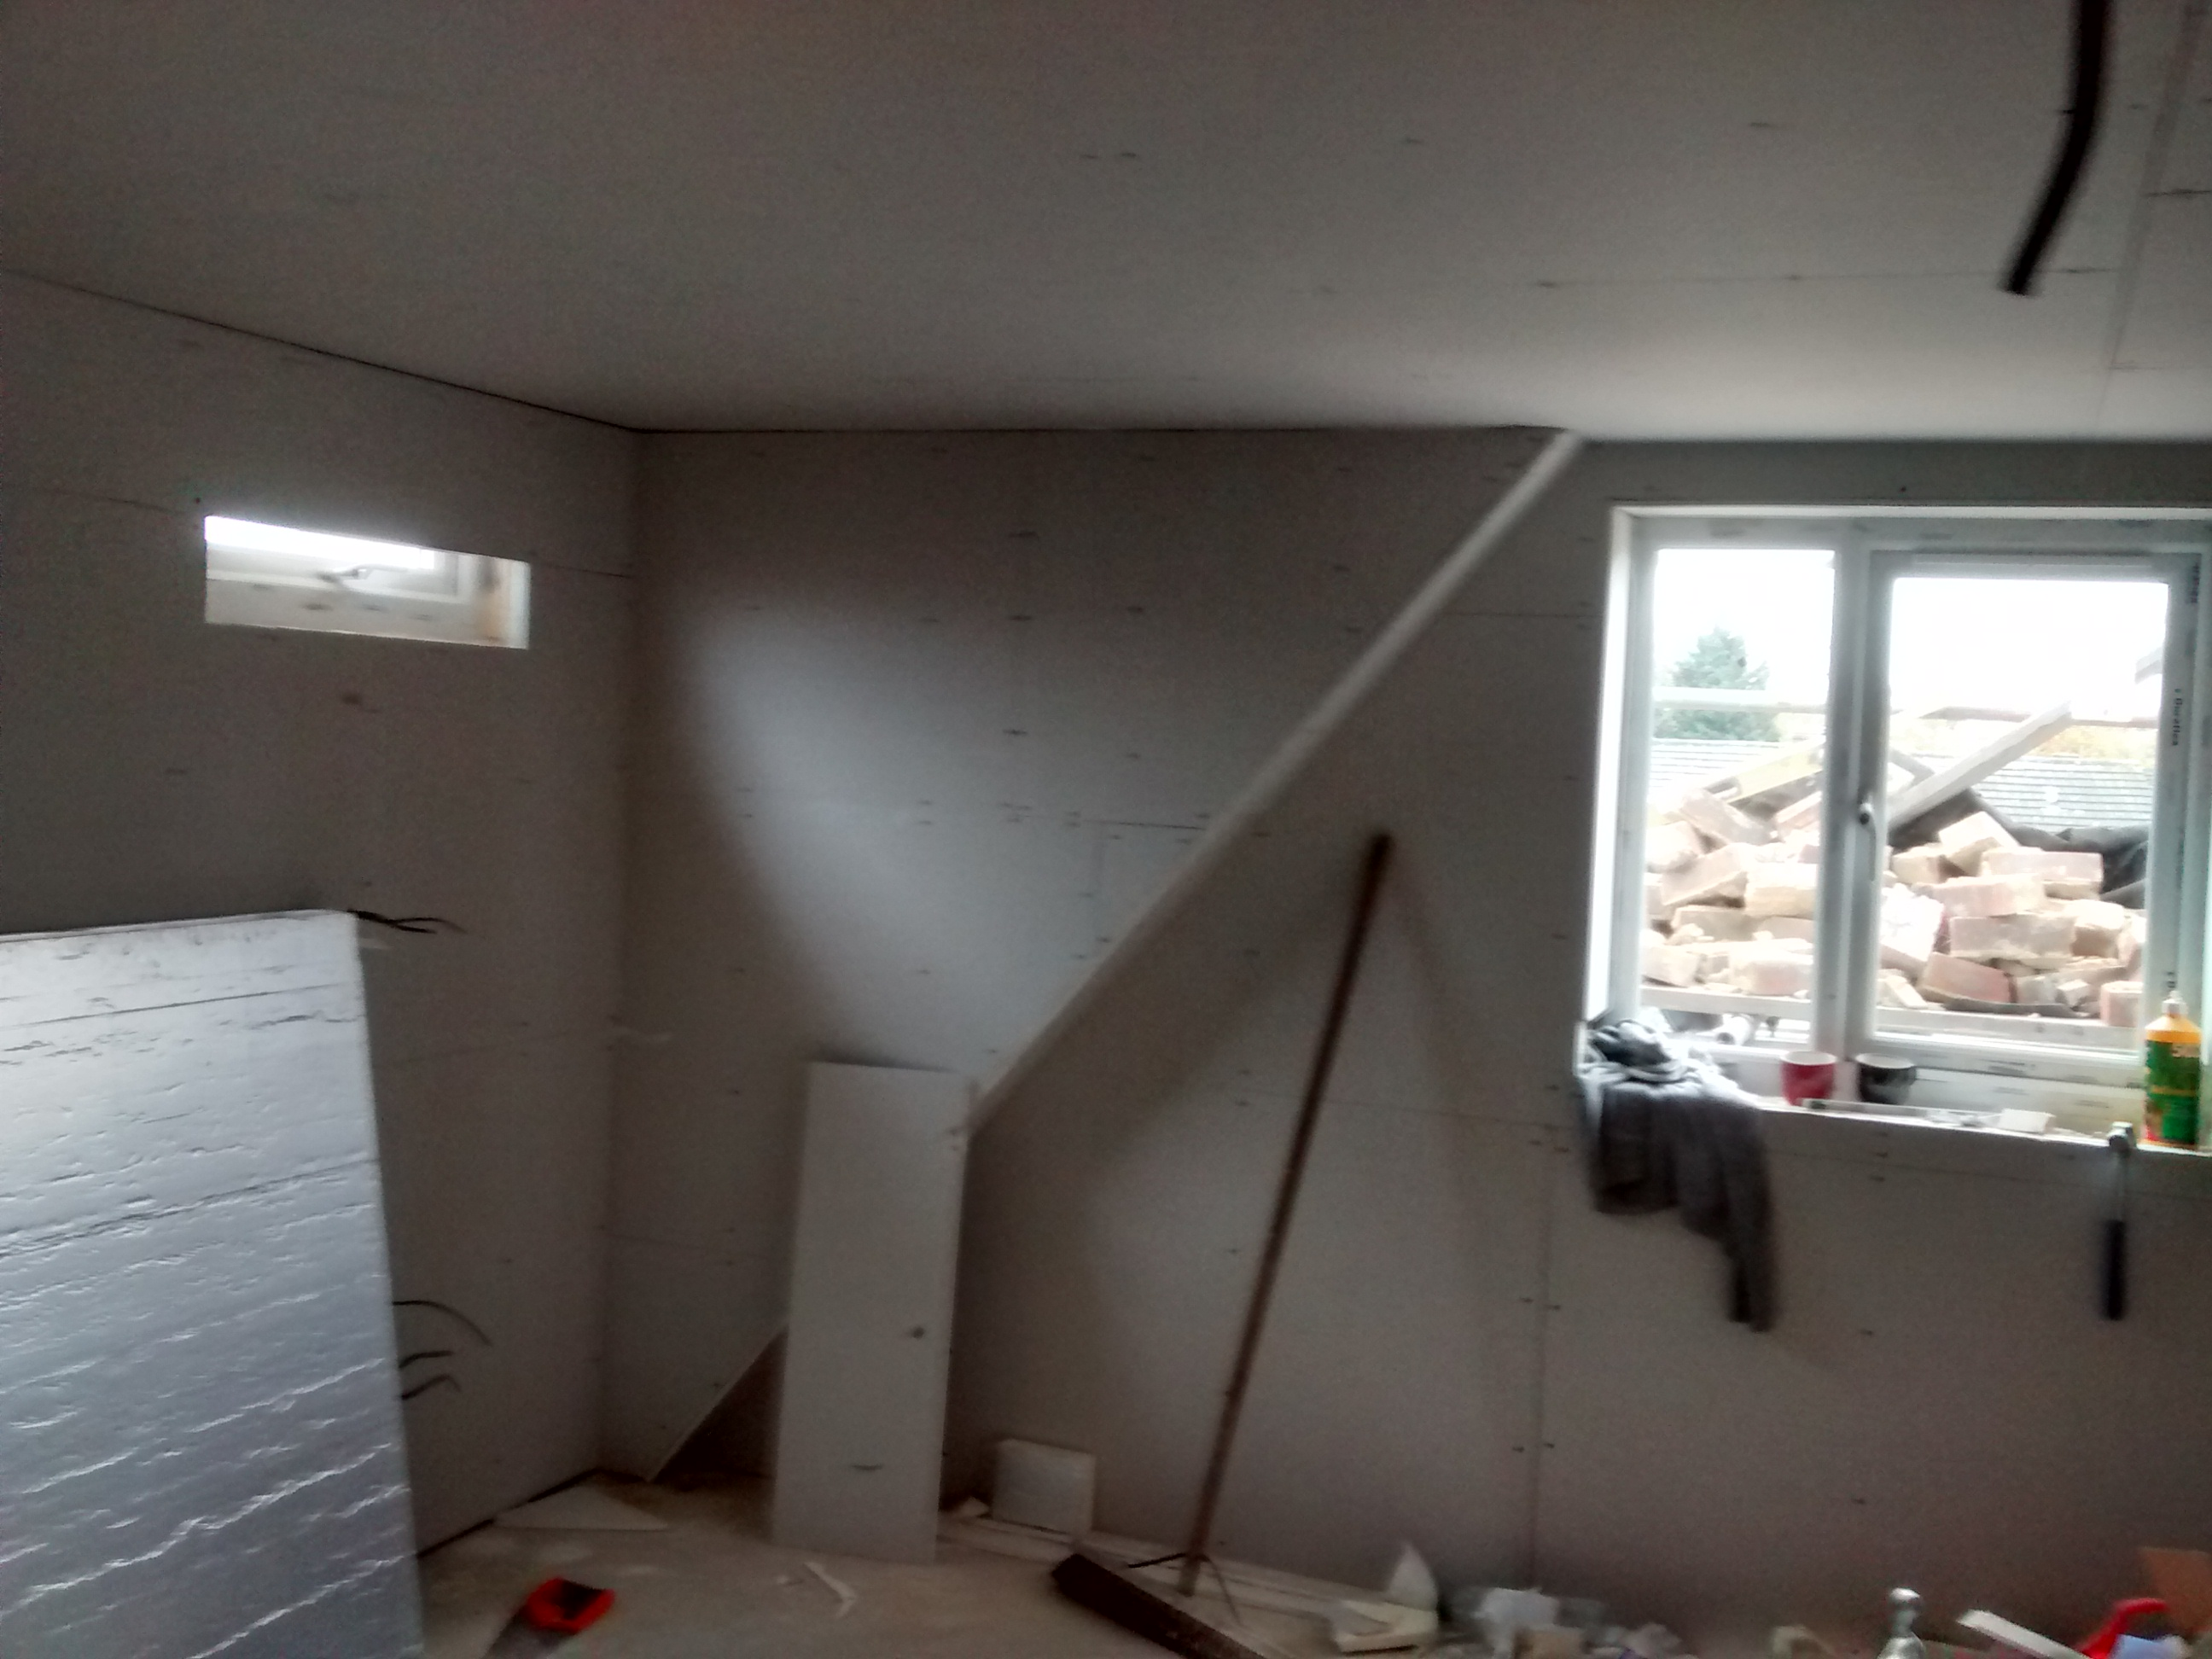 plaster board goes up